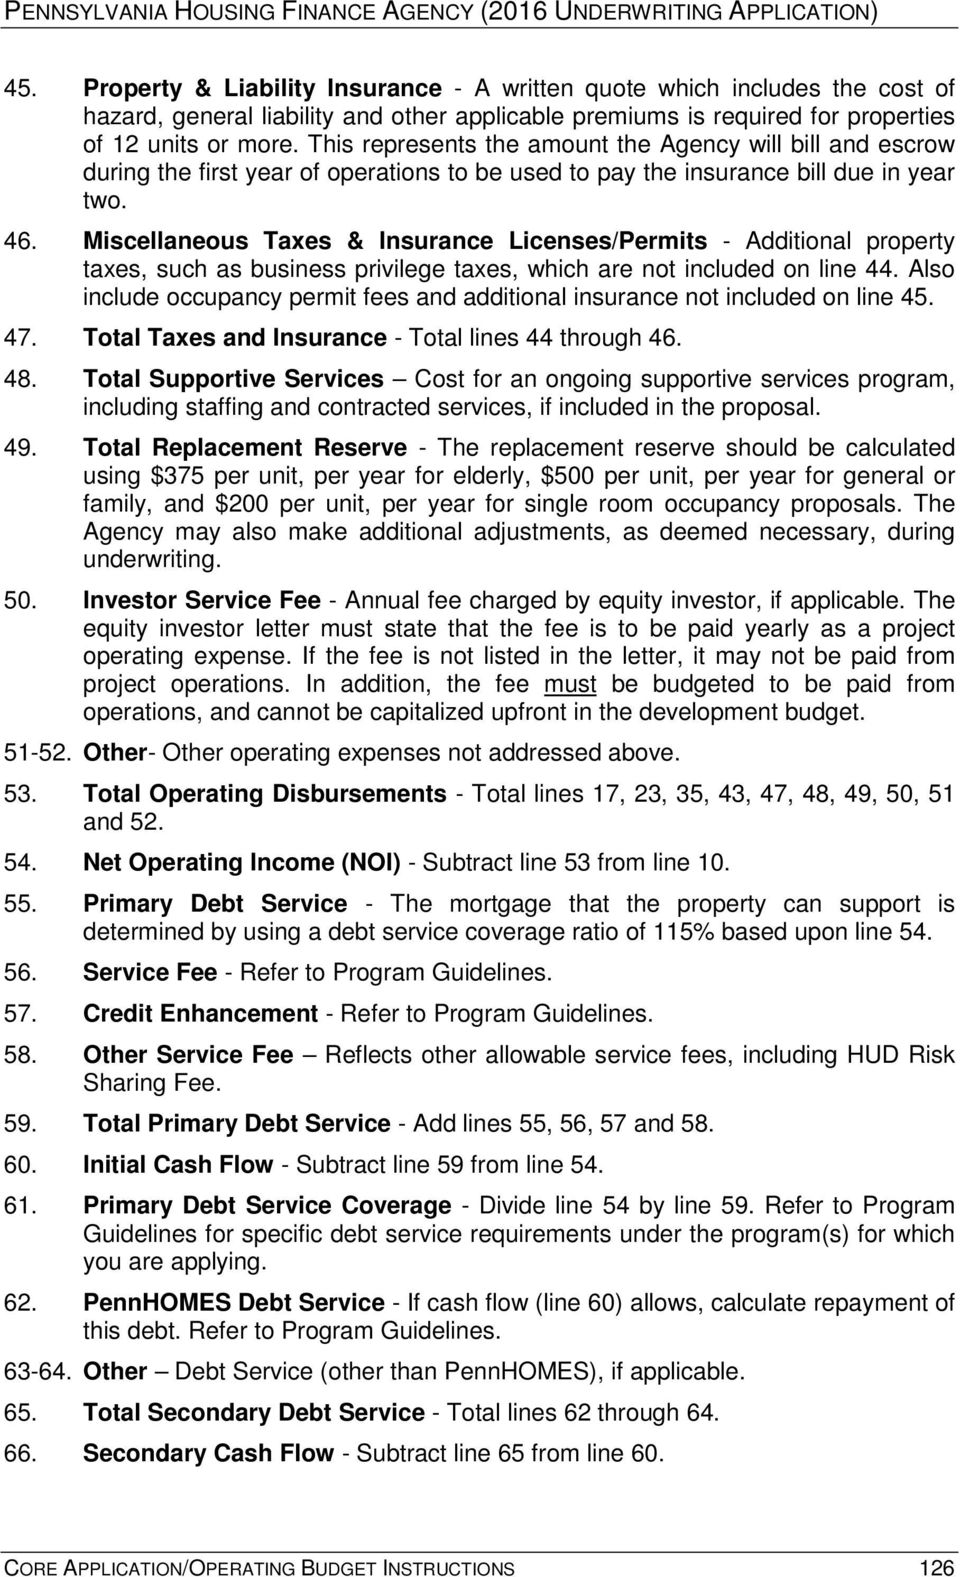 Miscellaneous Taxes & Insurance Licenses/Permits - Additional property taxes, such as business privilege taxes, which are not included on line 44.